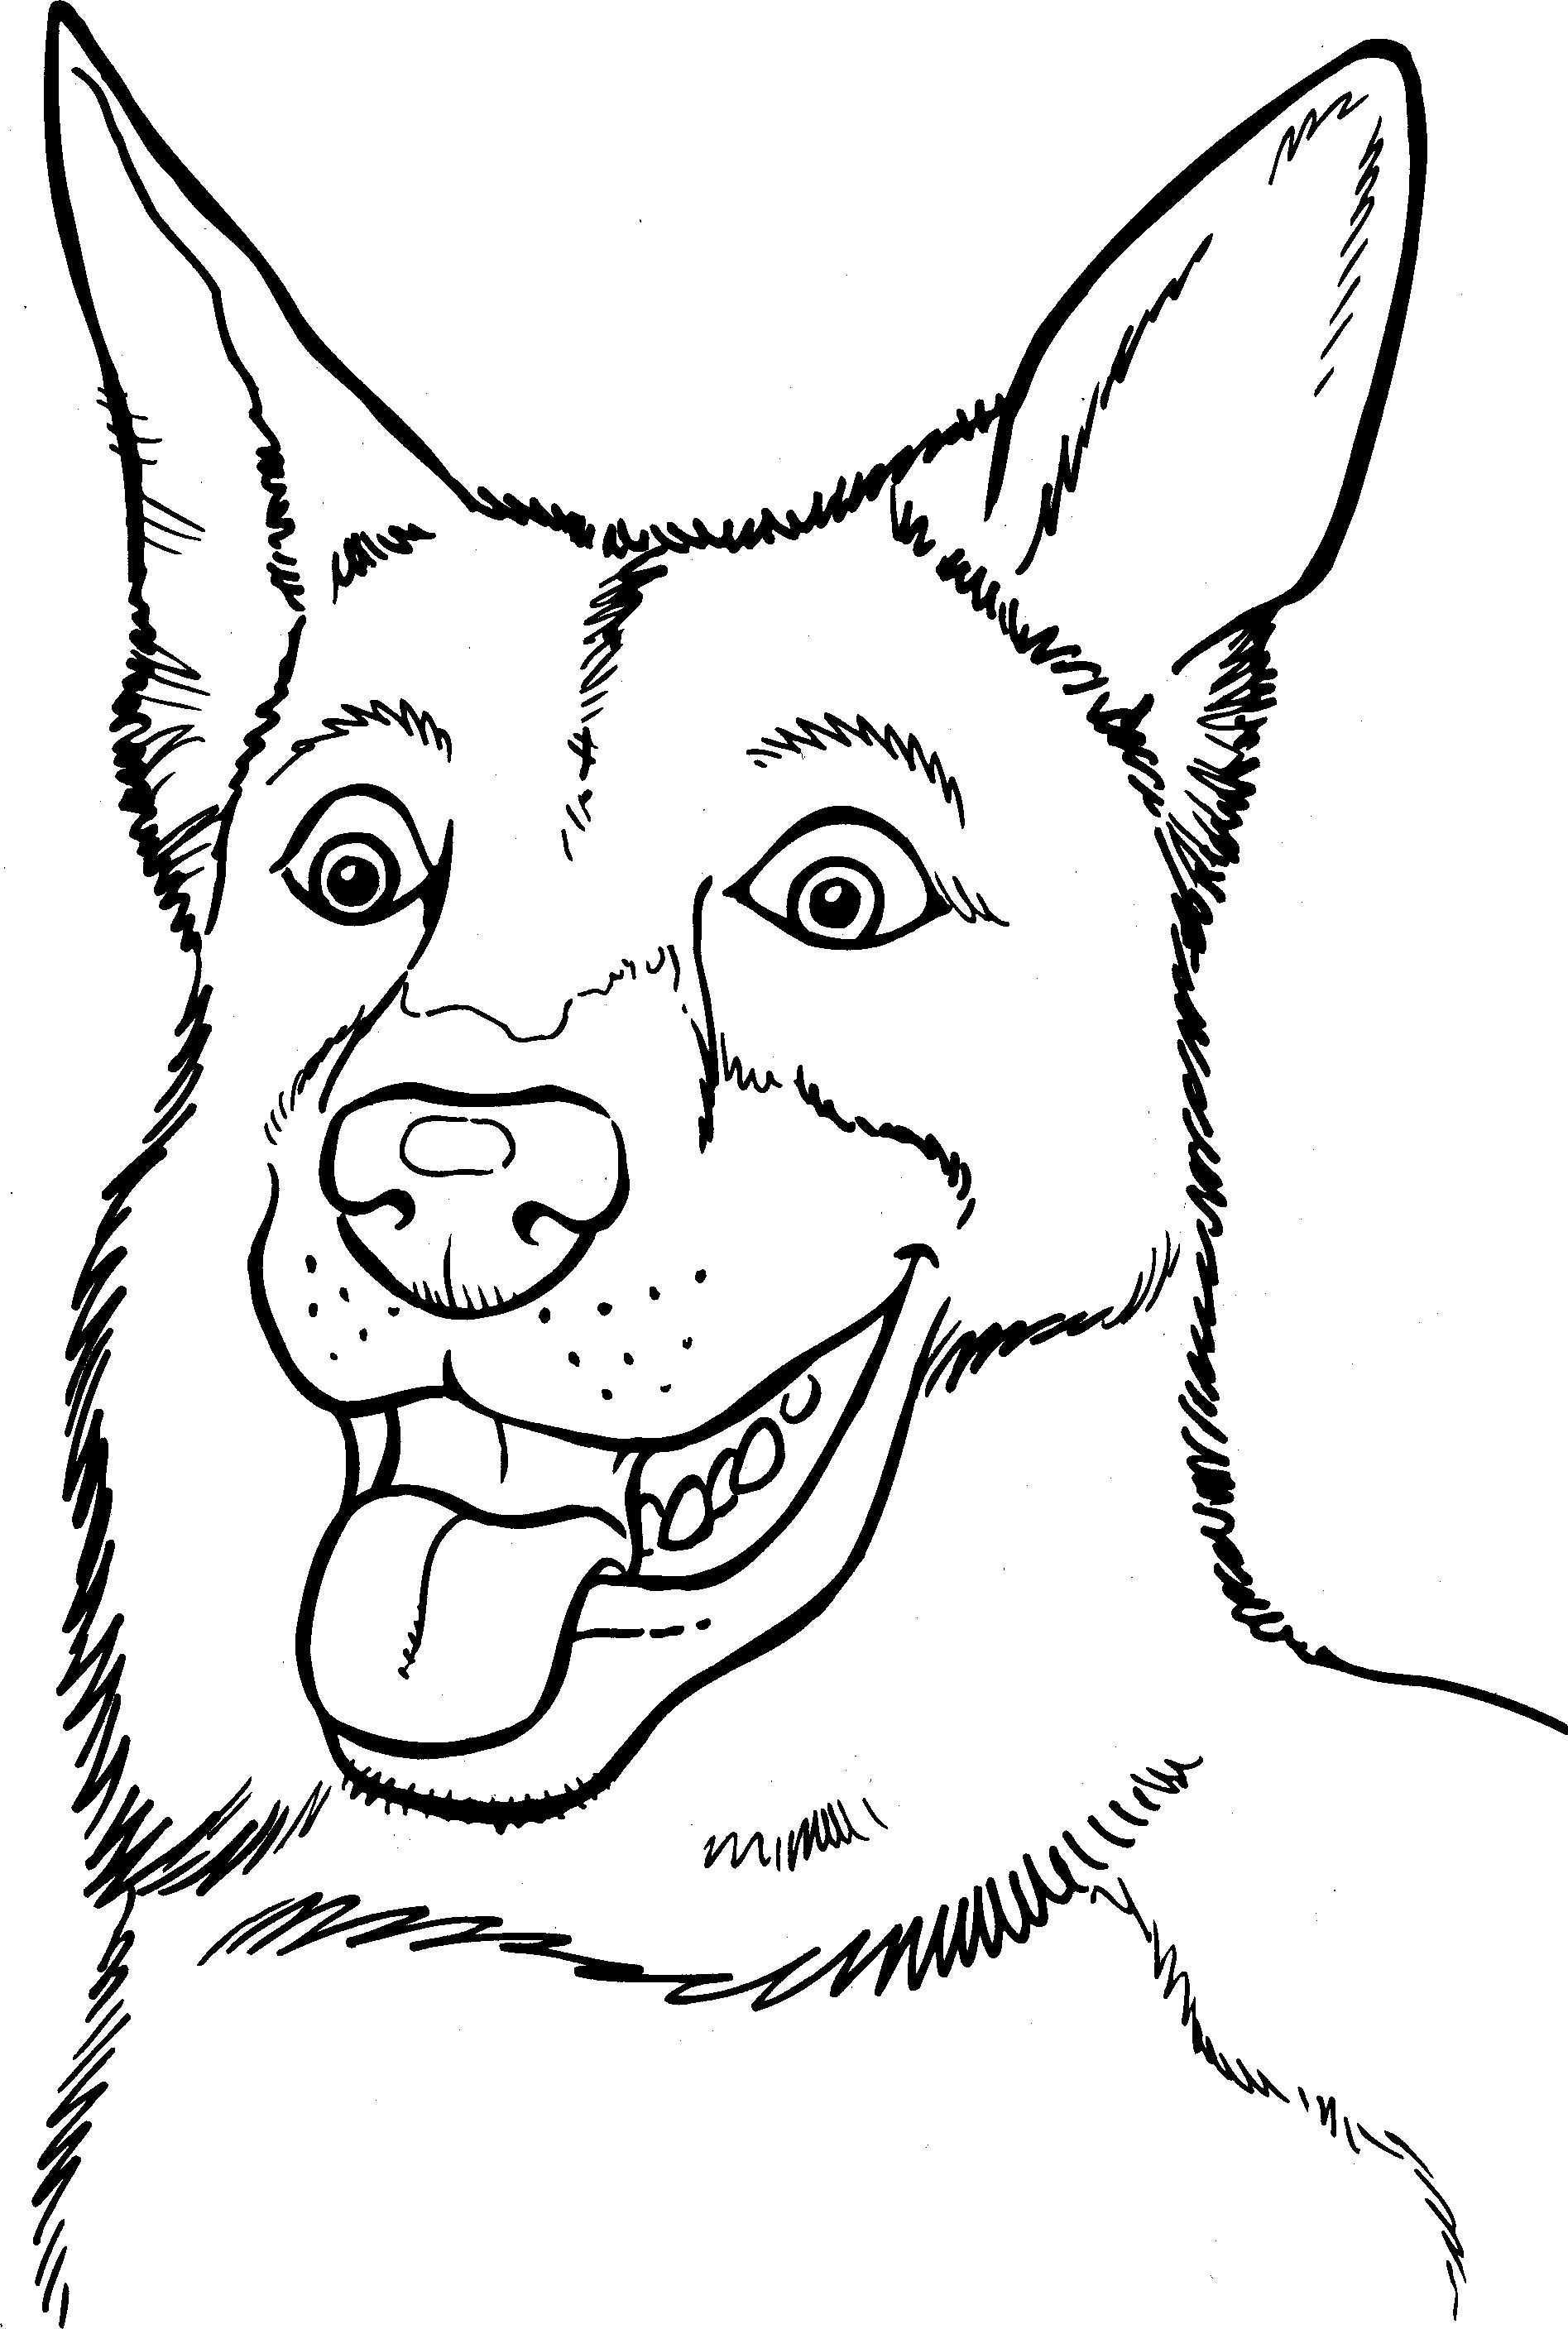 Pin By Dominique Mol On Kleurplaten Op Te Tekenen Dog Coloring Page Dog Coloring Book Animal Coloring Pages